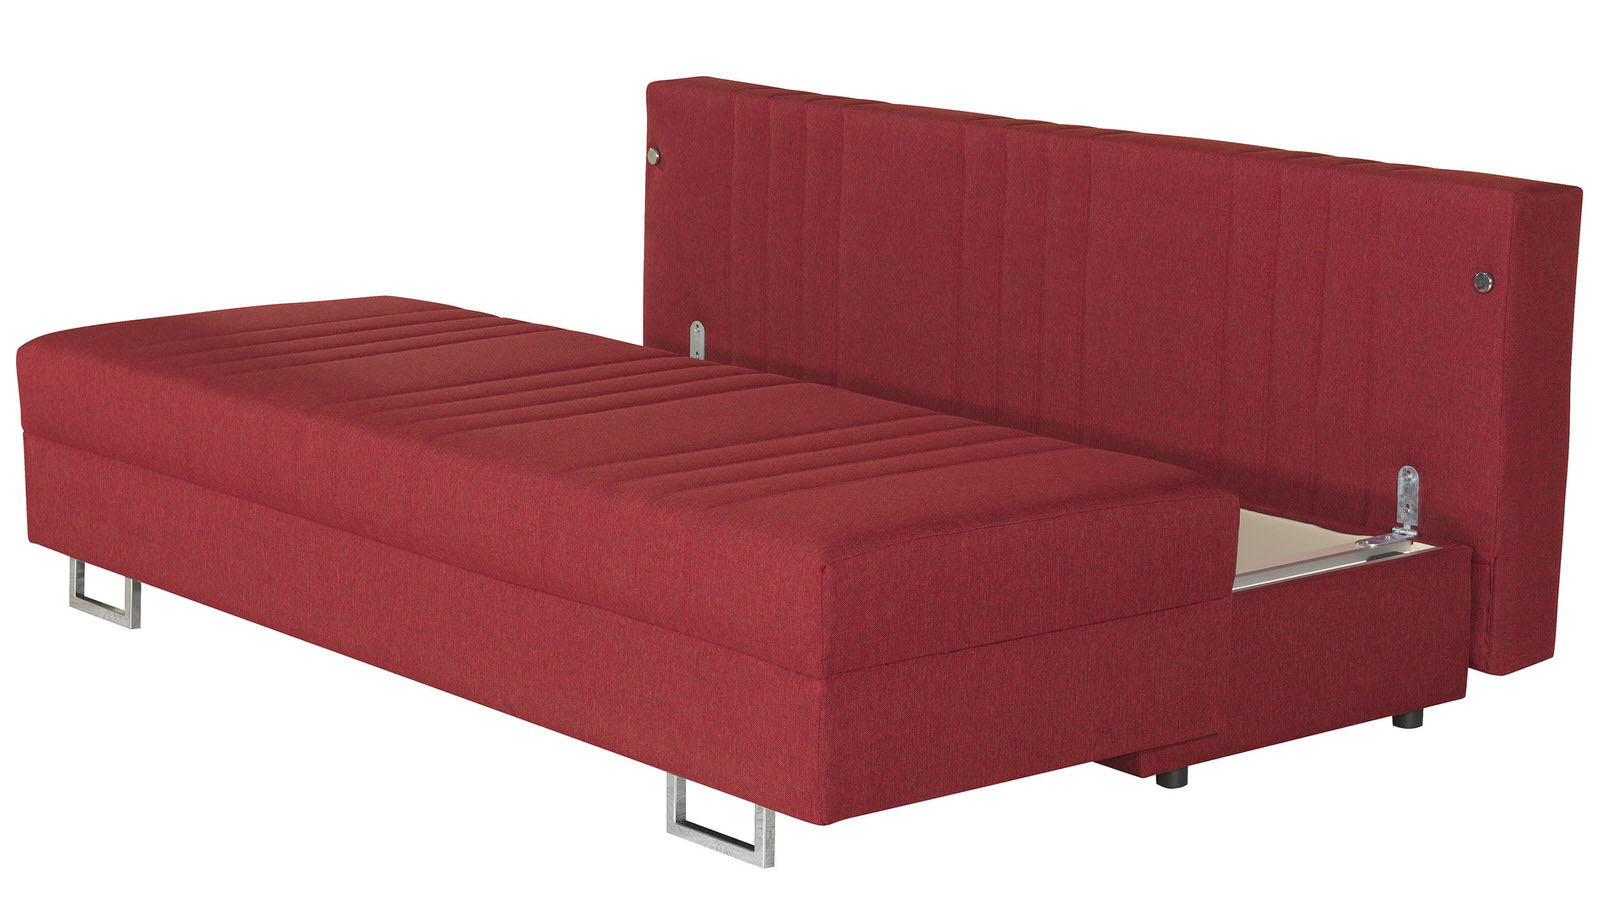 Flex motion red queen sofa bed w storage by casamode for Sofa queen bed